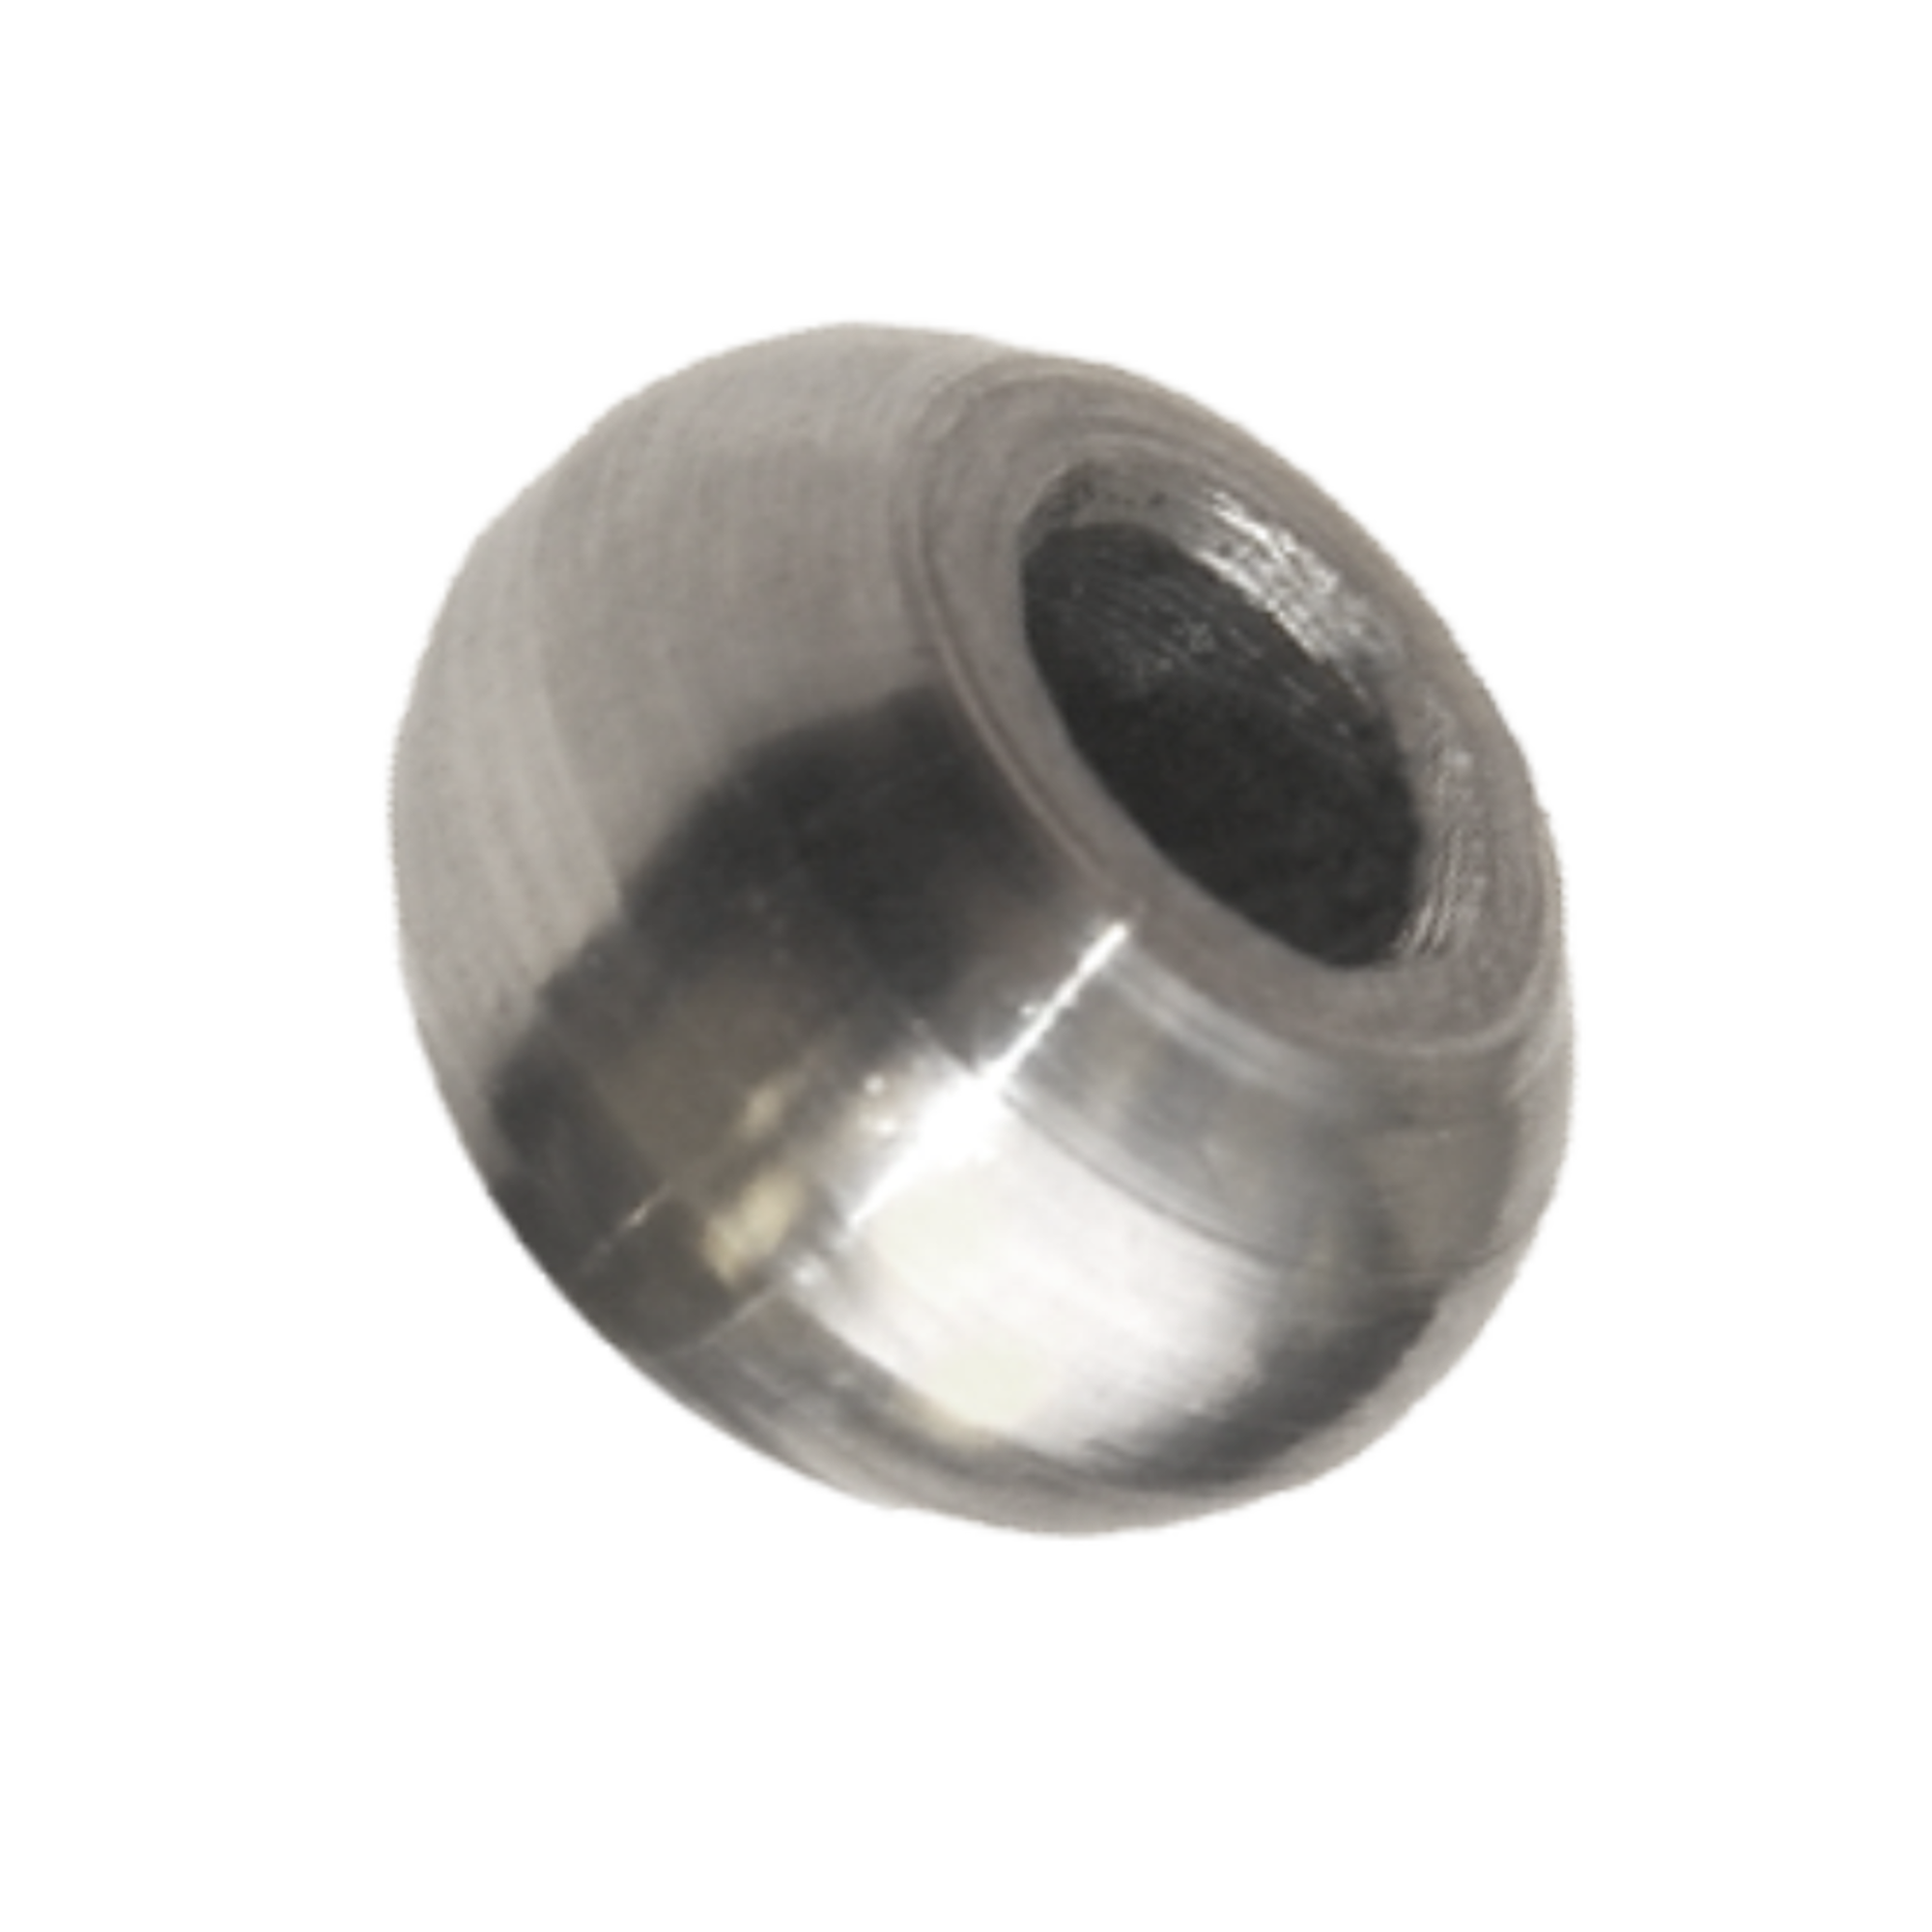 Ba3 1 5 A2 Aisi 304 Stainless Swage Ball Fitting 1 2mm Amp 1